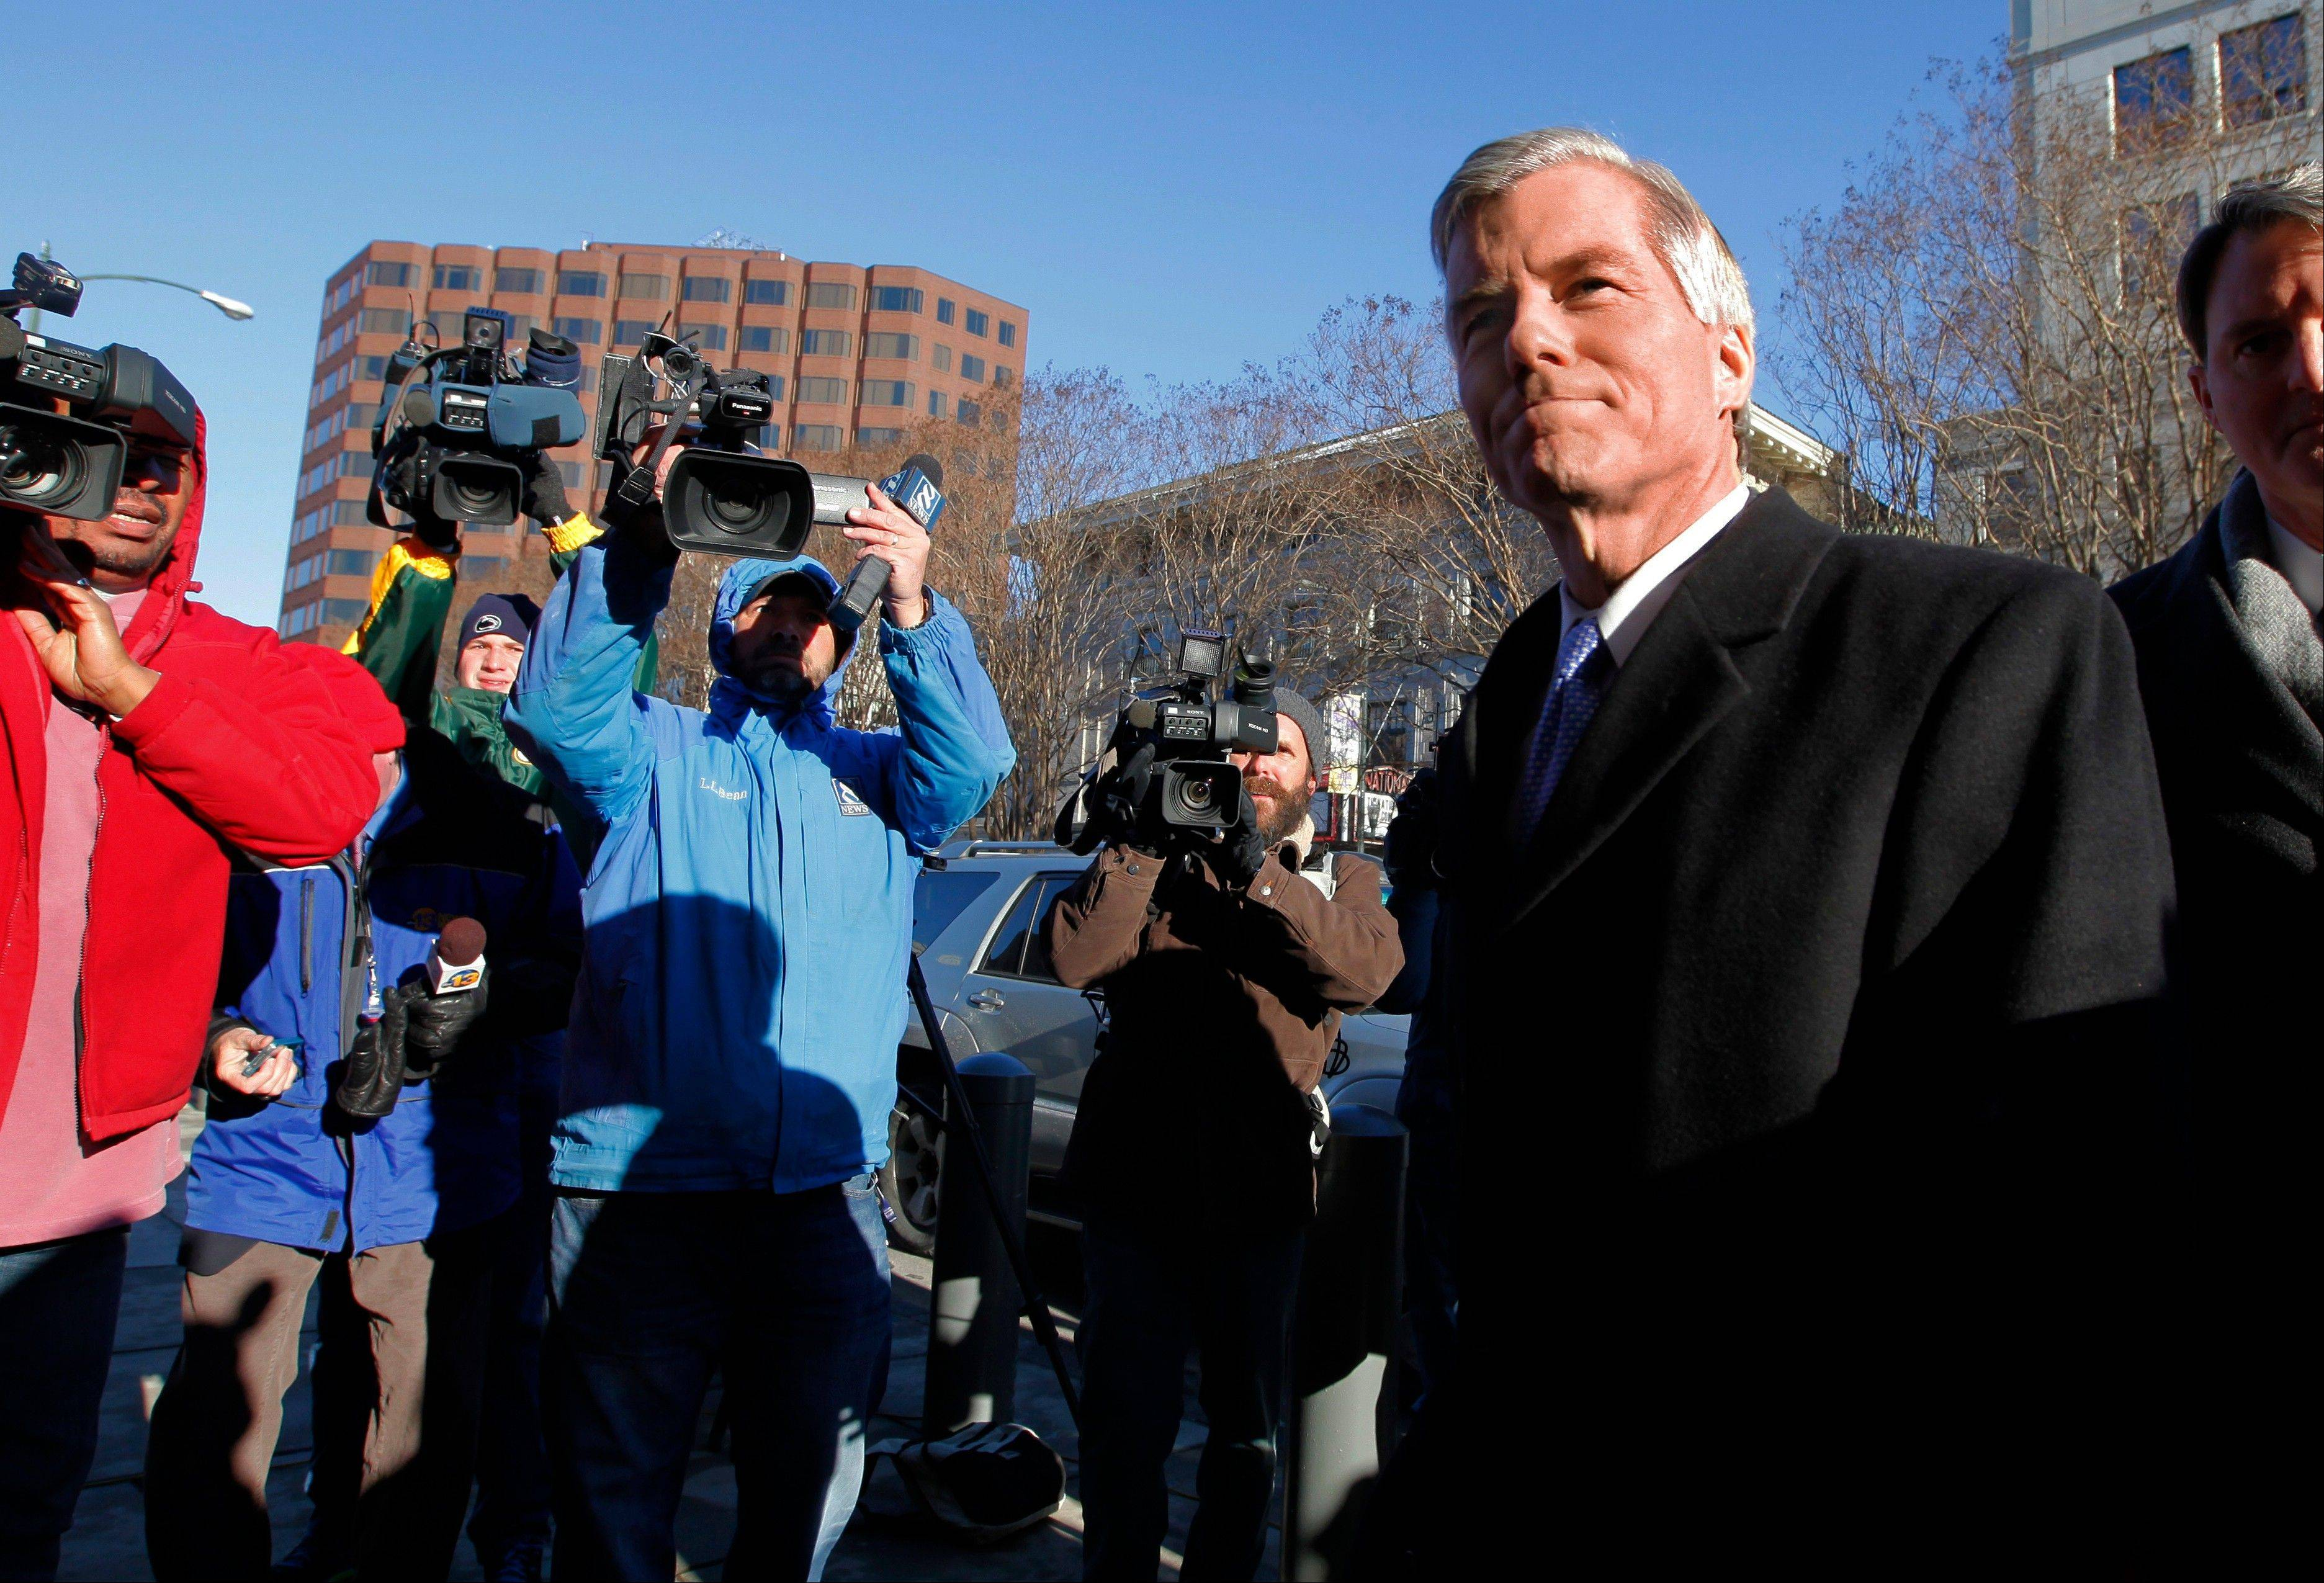 Former Va. Governor Bob McDonnell, right, surrounded by news cameras, enters U.S. District Court in Richmond, Va. for his and his wife Maureen�s bond hearing and arraignment on Friday, Jan. 24, 2014 on federal corruption charges. The McDonnells, flanked by their children, did not comment as they entered the courthouse.